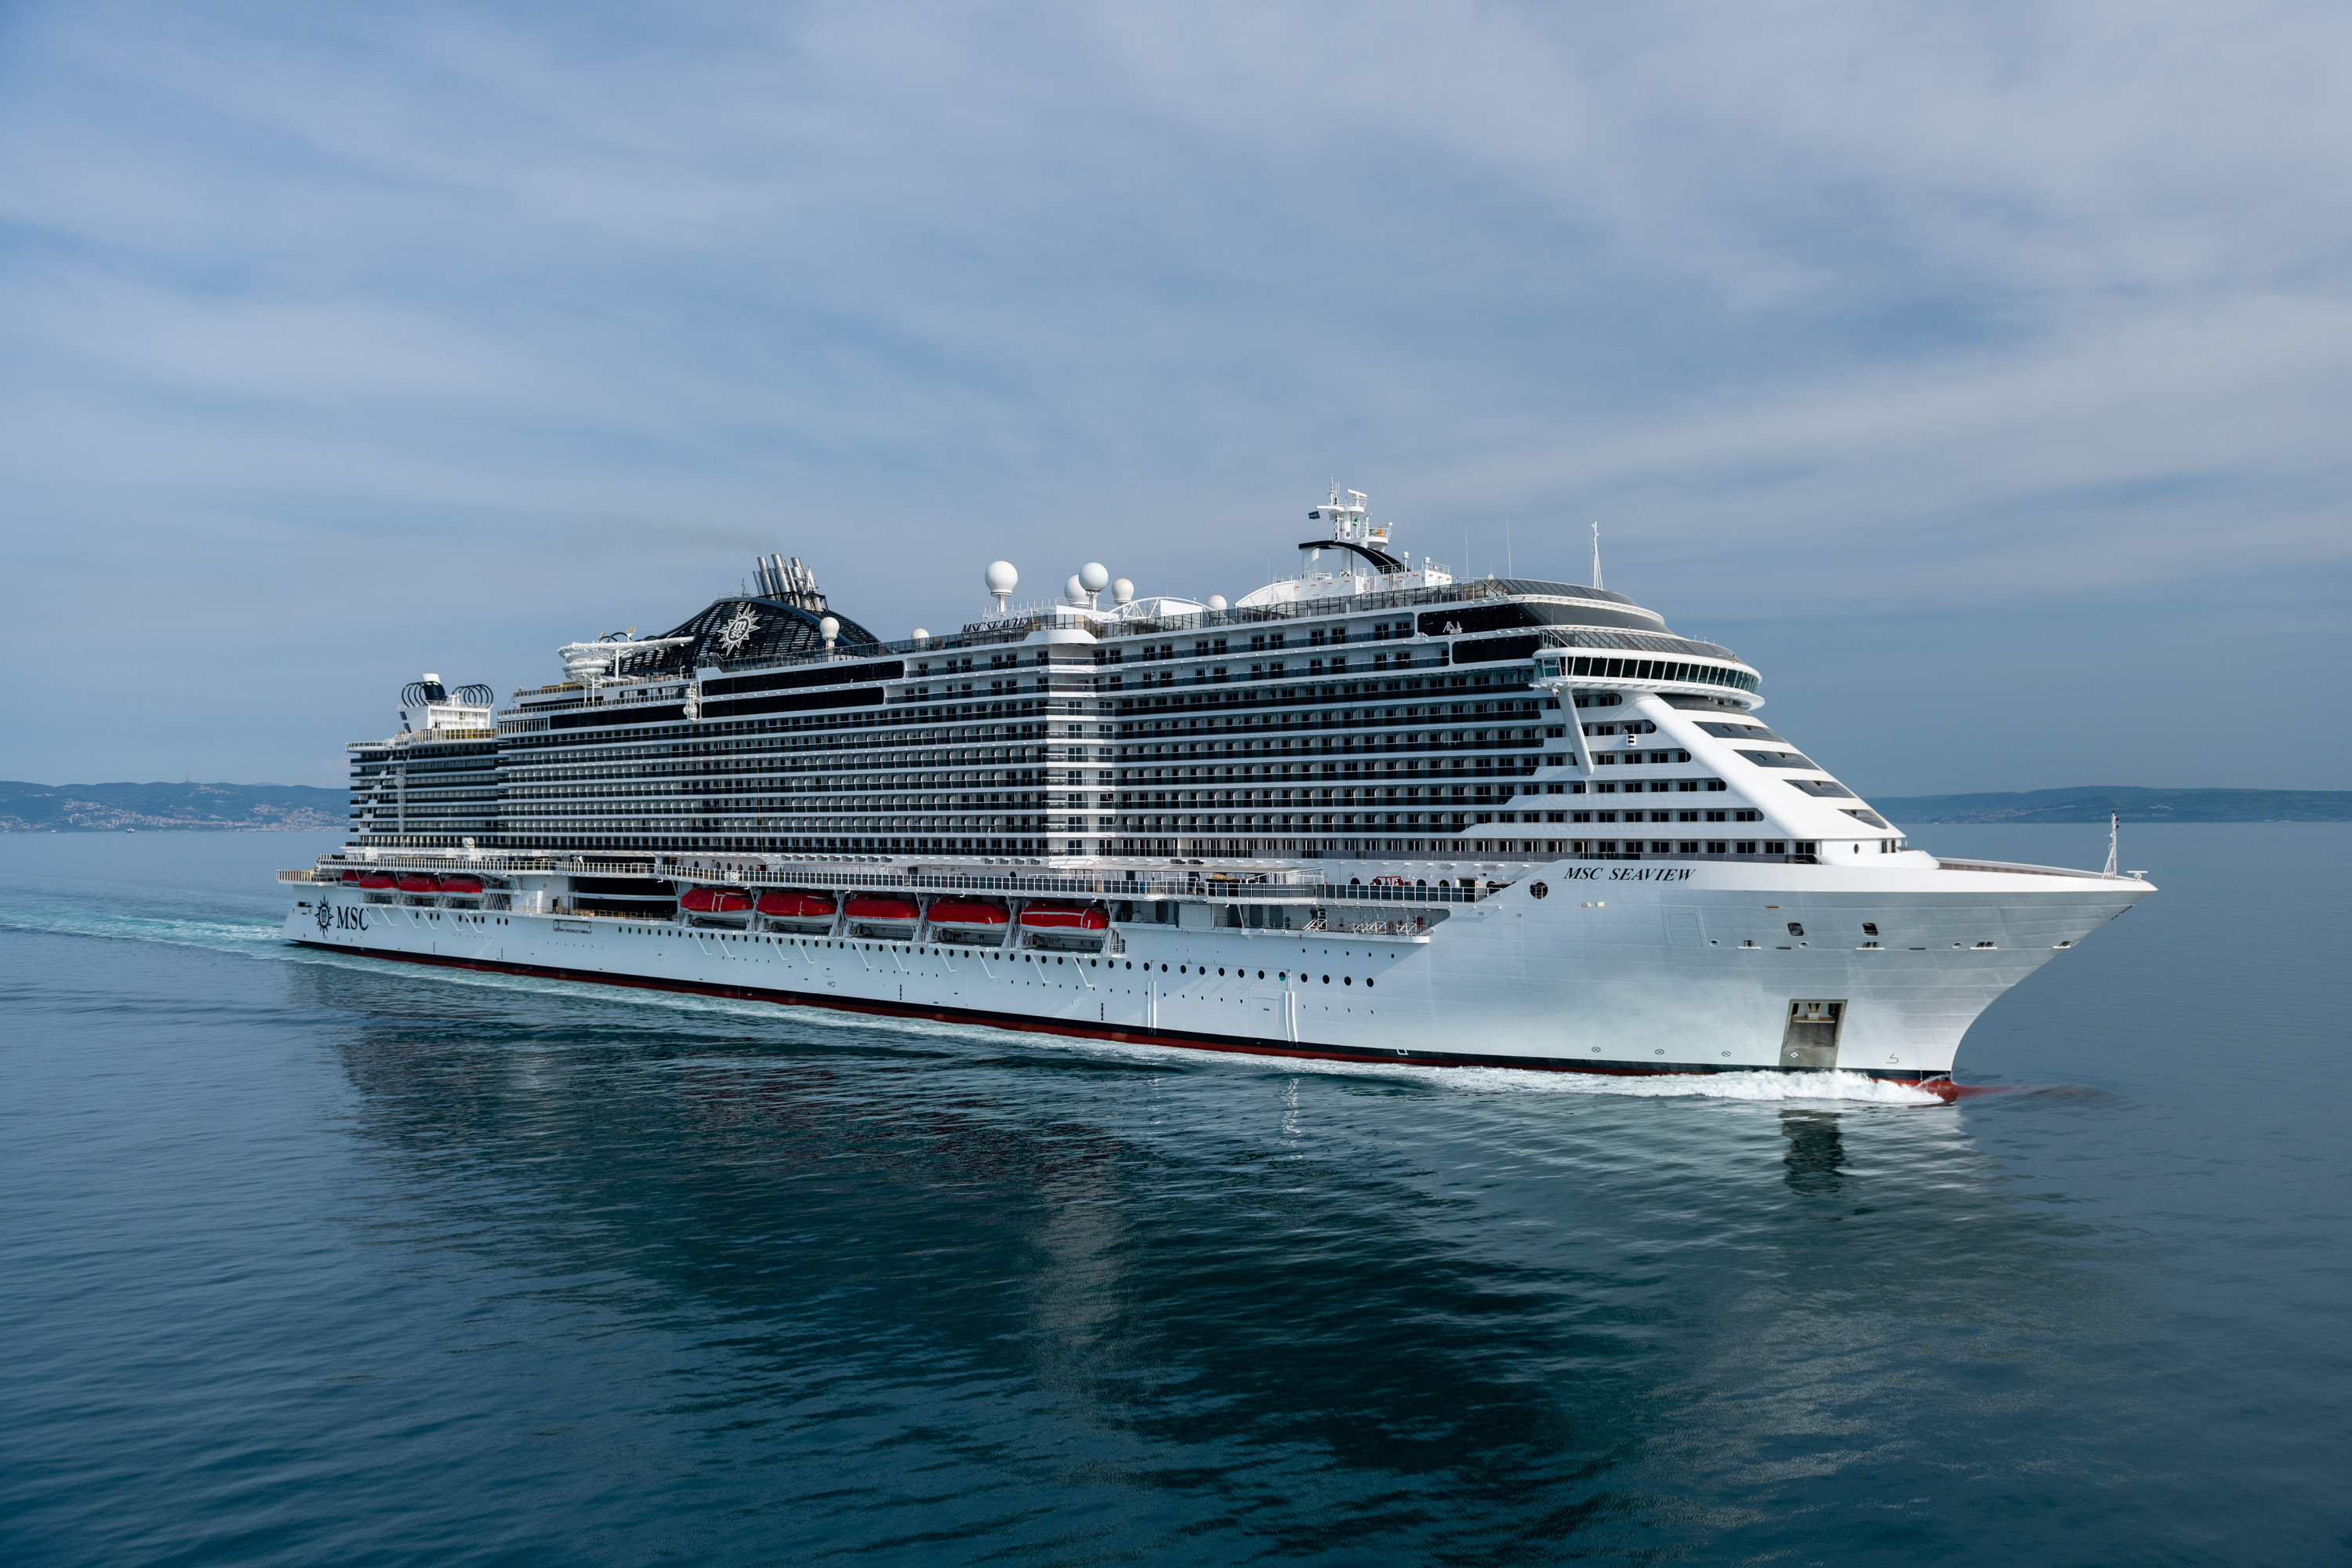 MSC Seaview in the Mediterranean during sea trials